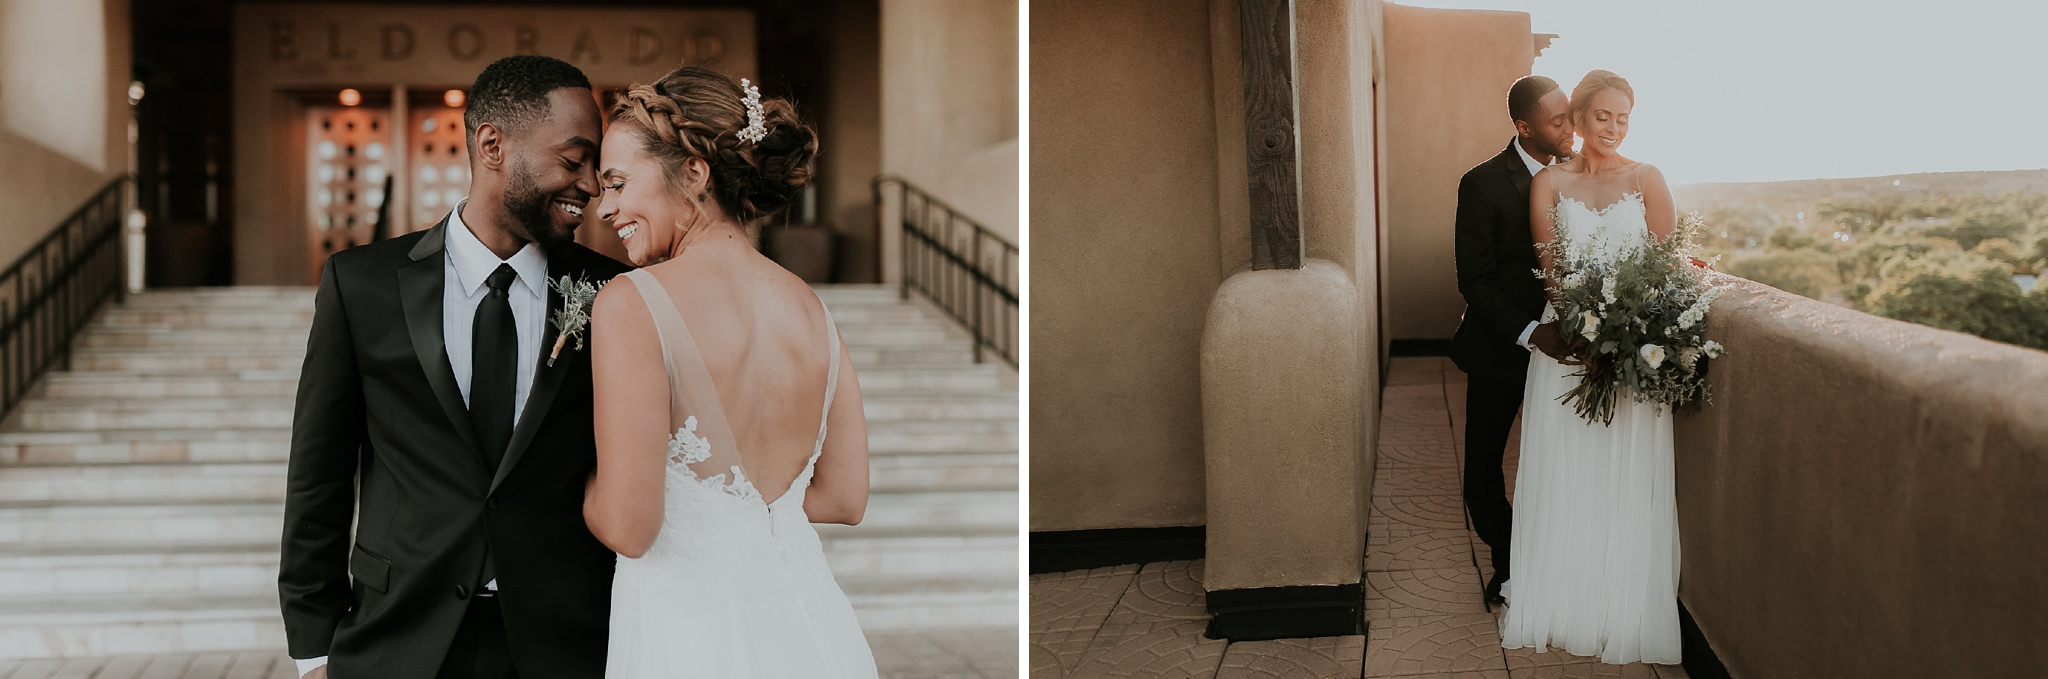 Alicia+lucia+photography+-+albuquerque+wedding+photographer+-+santa+fe+wedding+photography+-+new+mexico+wedding+photographer+-+new+mexico+wedding+-+wedding+gowns+-+bridal+gowns+-+a+line+wedding+gown_0078.jpg